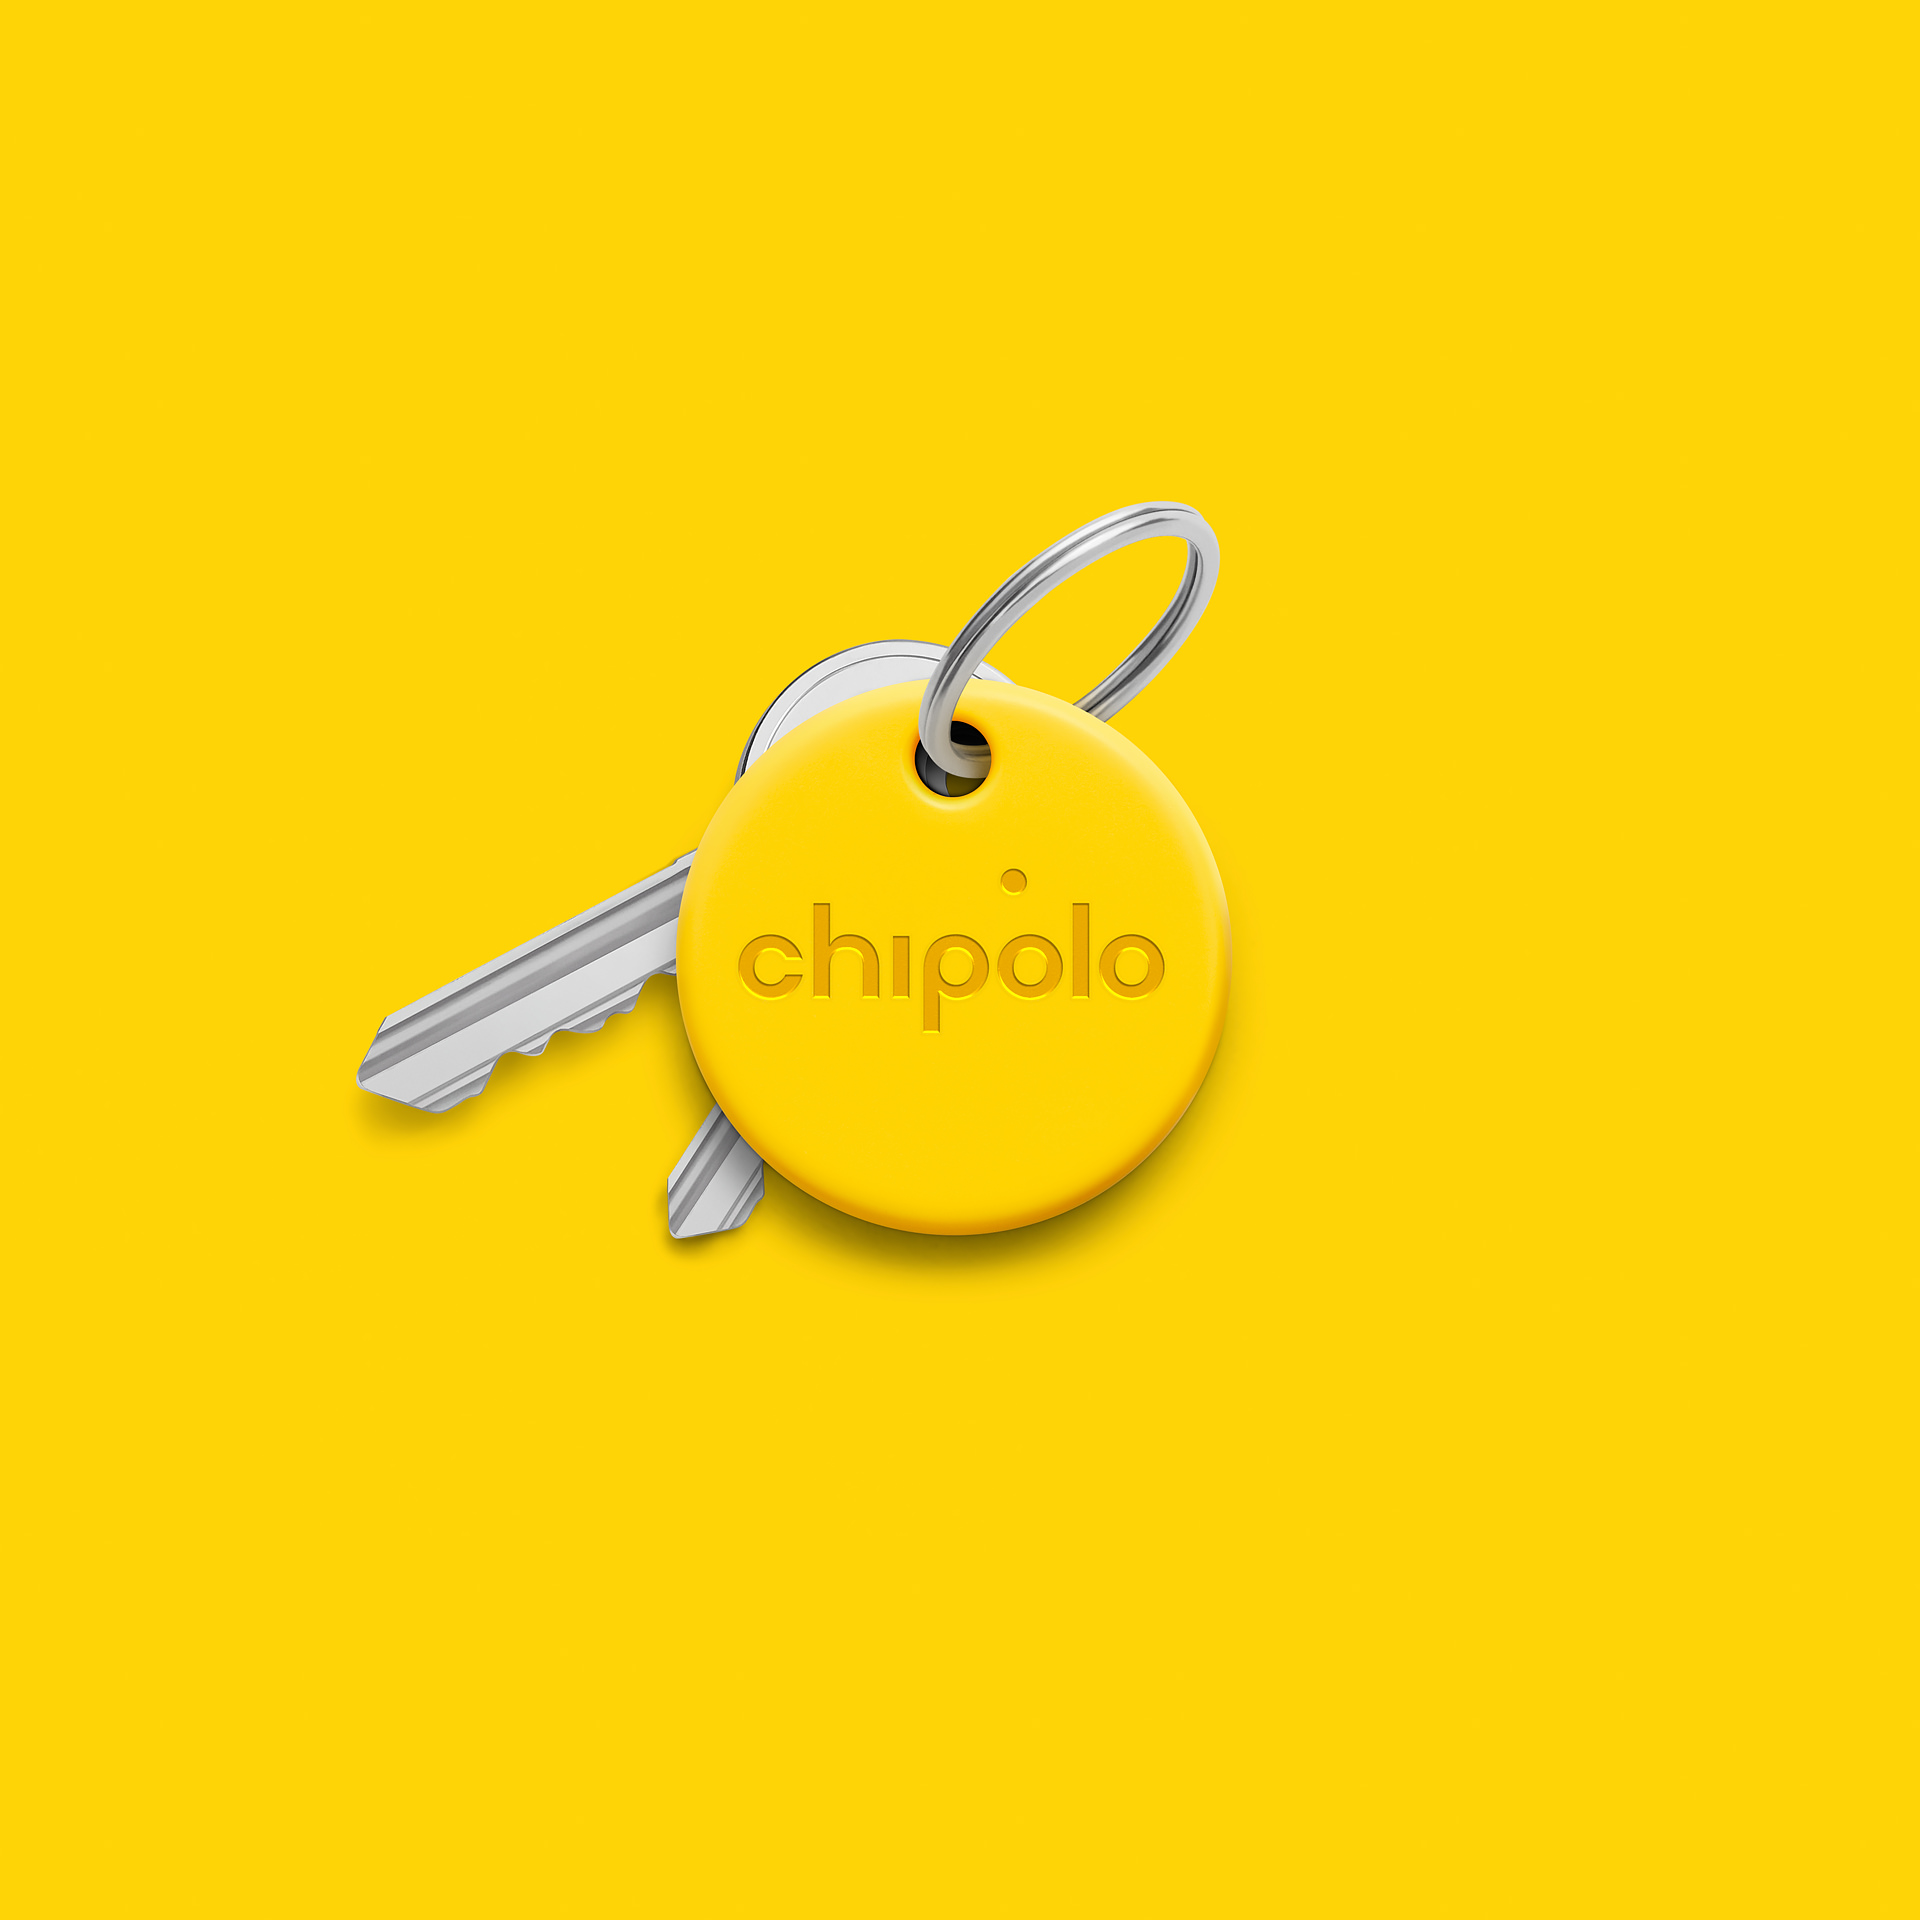 Chipolo-ONE-topdown-yellow_final-1